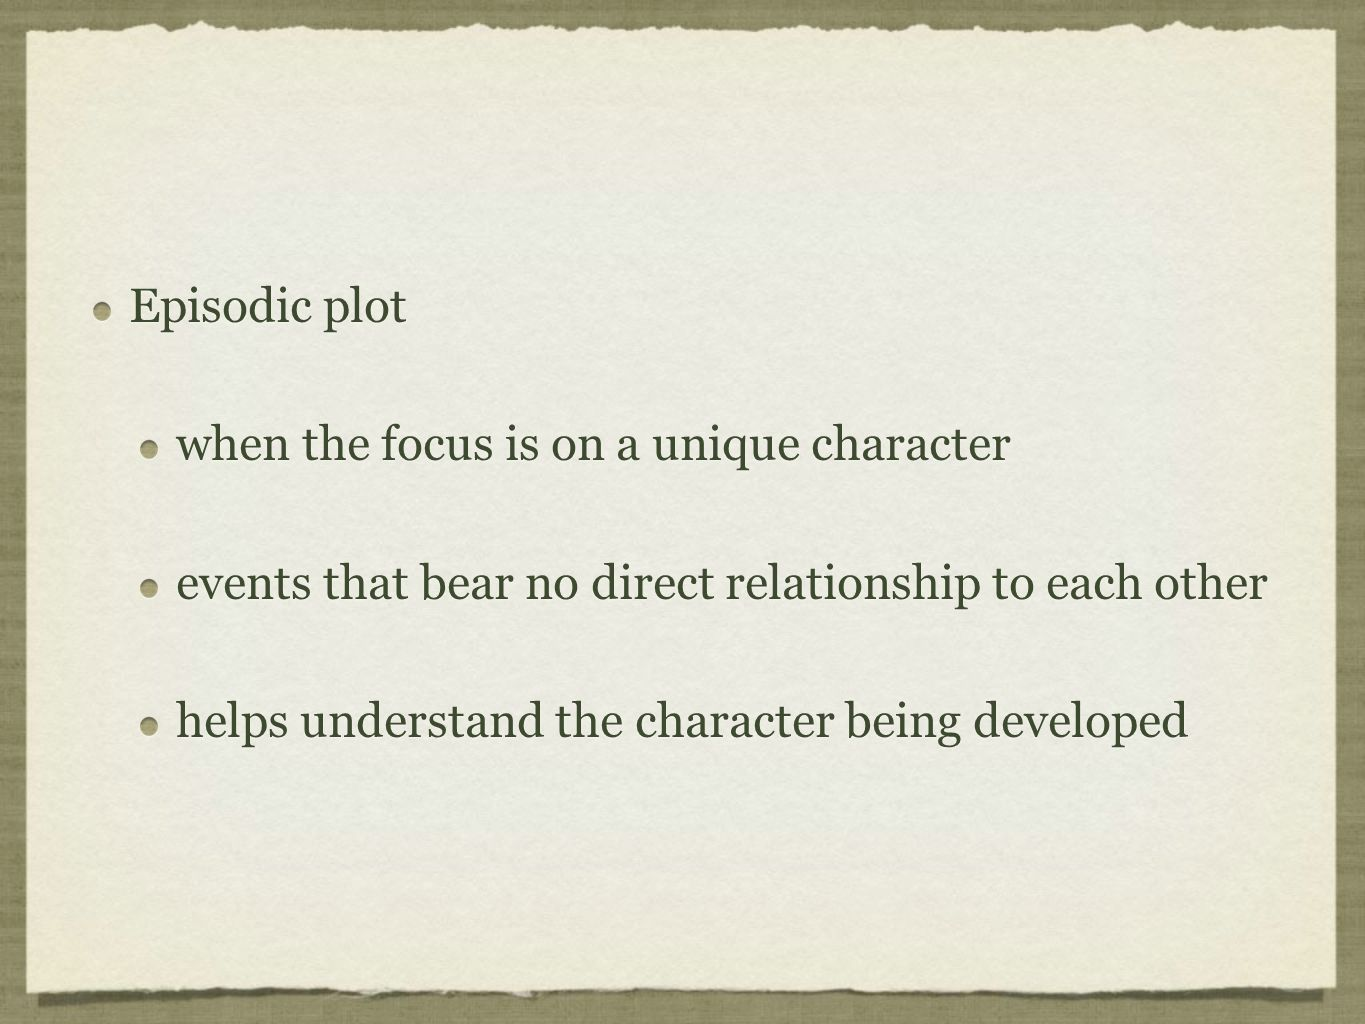 Episodic plot when the focus is on a unique character events that bear no direct relationship to each other helps understand the character being developed Episodic plot when the focus is on a unique character events that bear no direct relationship to each other helps understand the character being developed